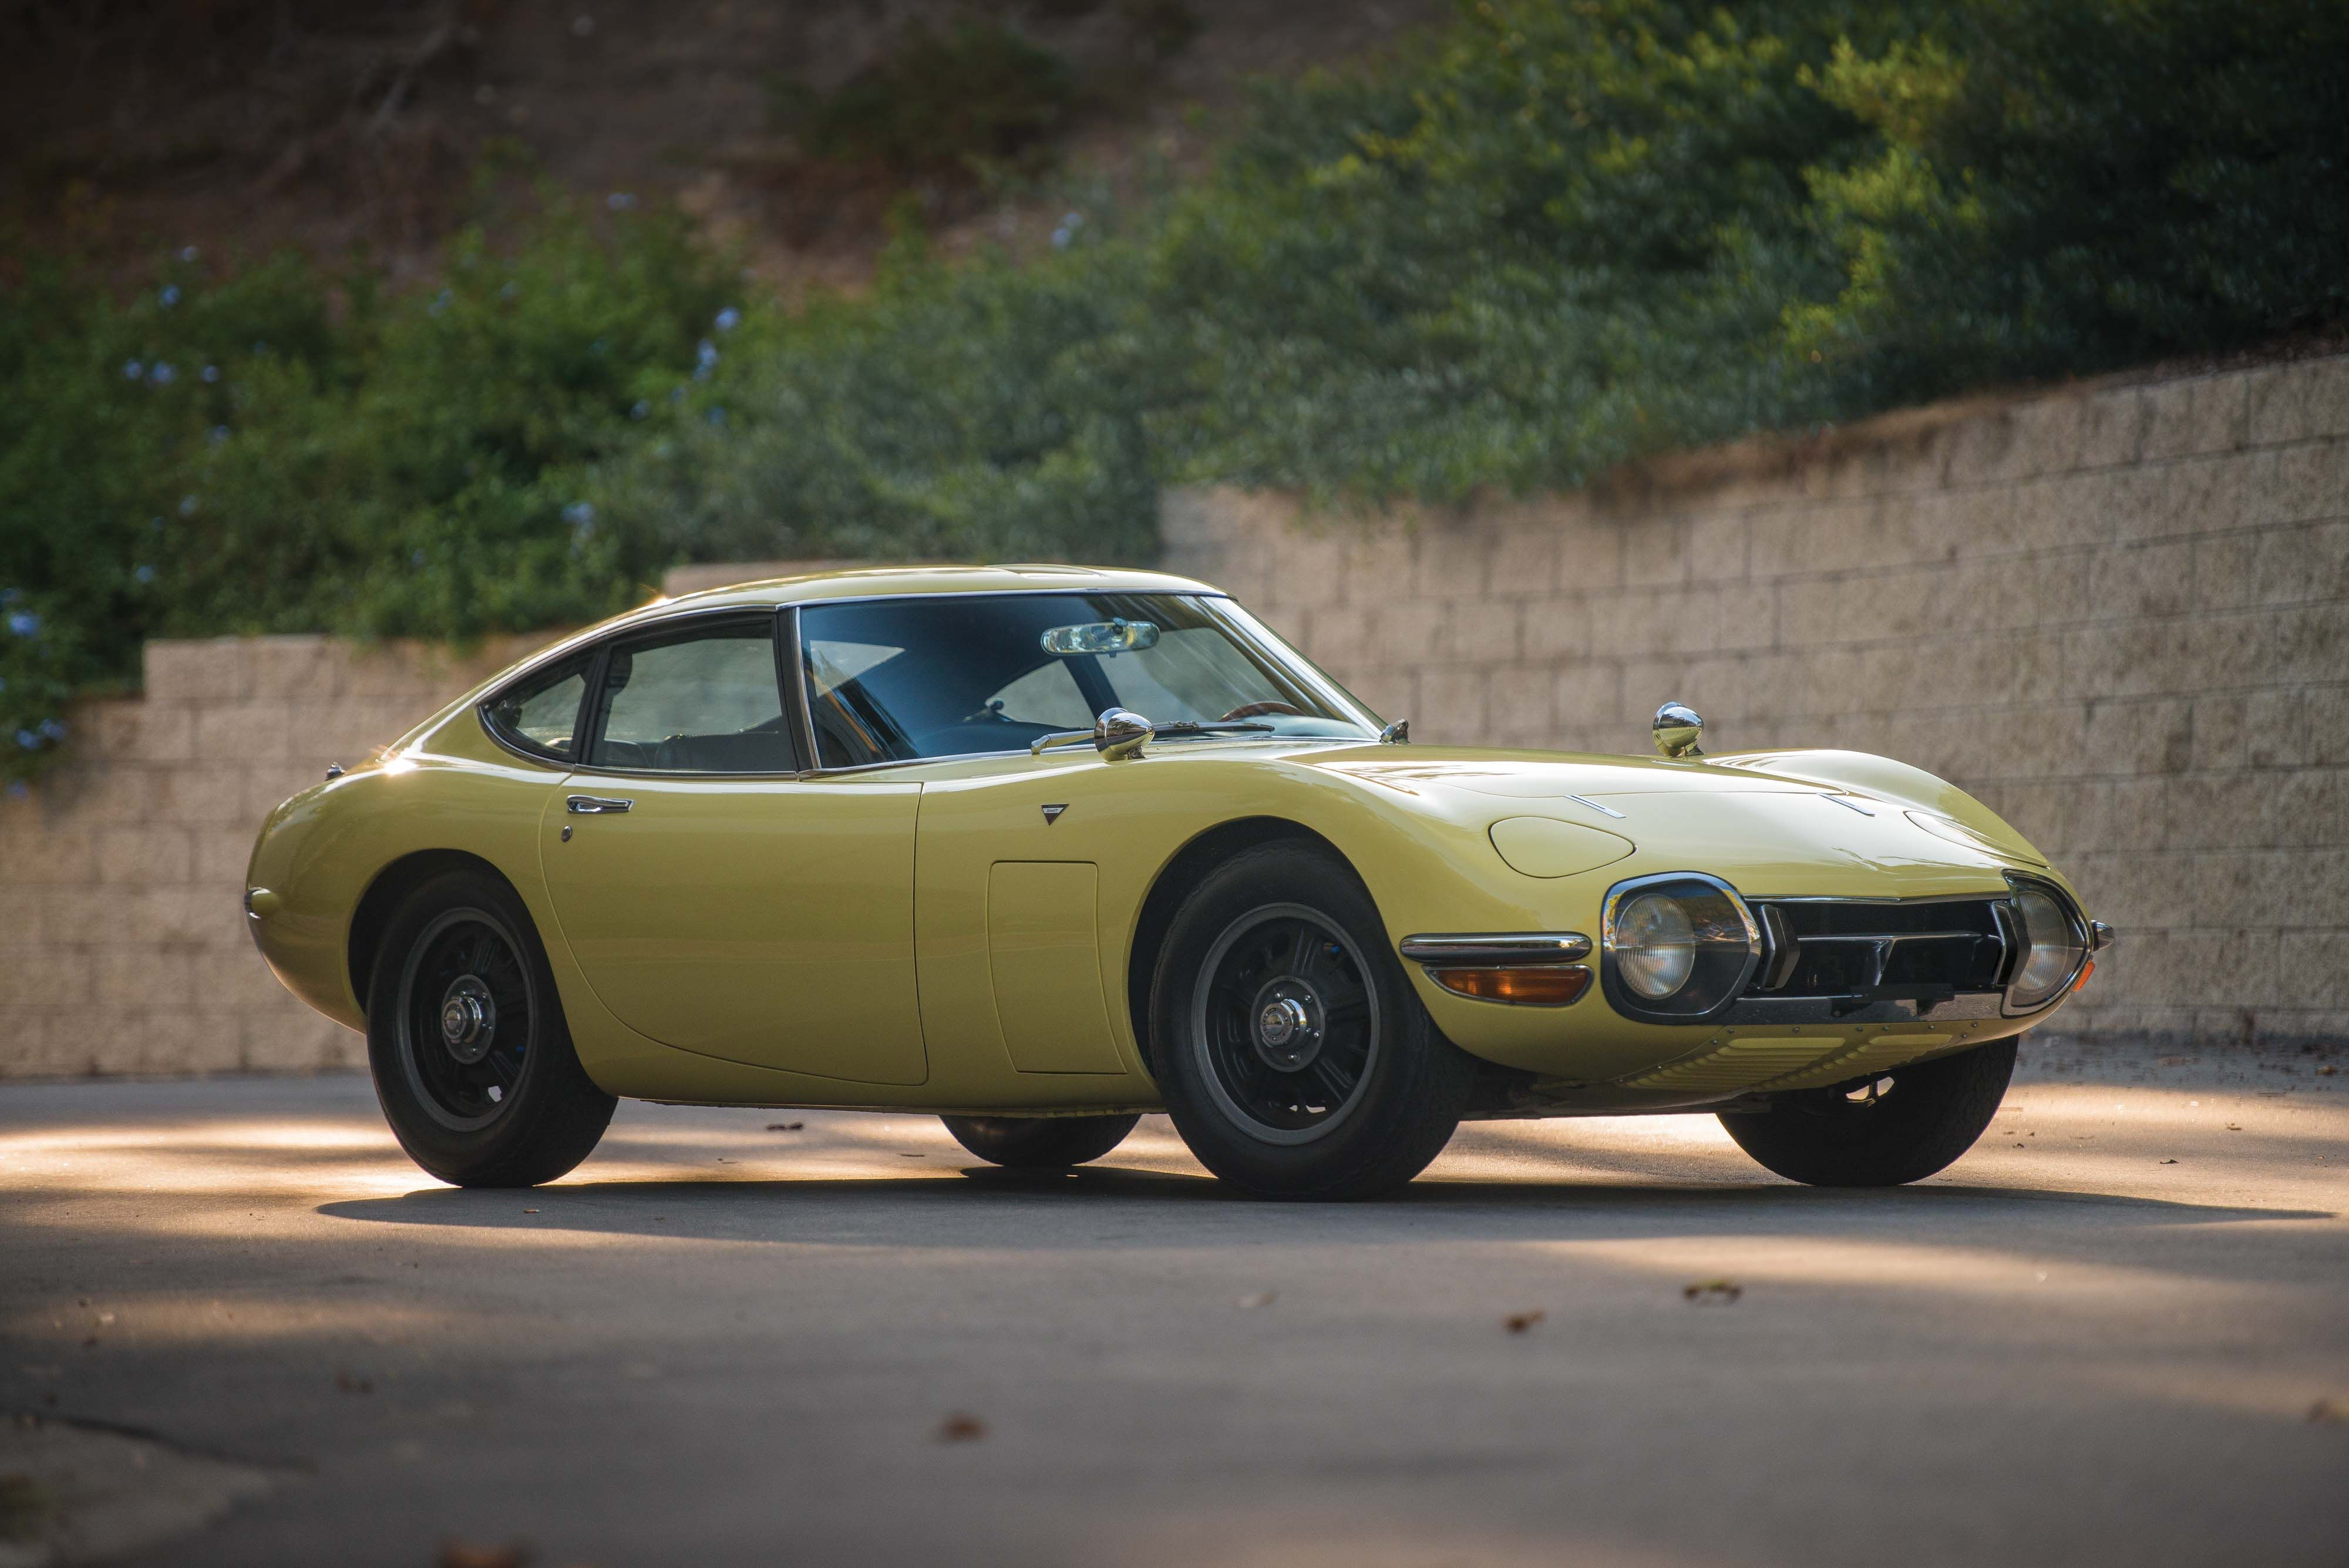 The First Japanese Supercar Toyota 2000gt Japanese Cars Classic Cars